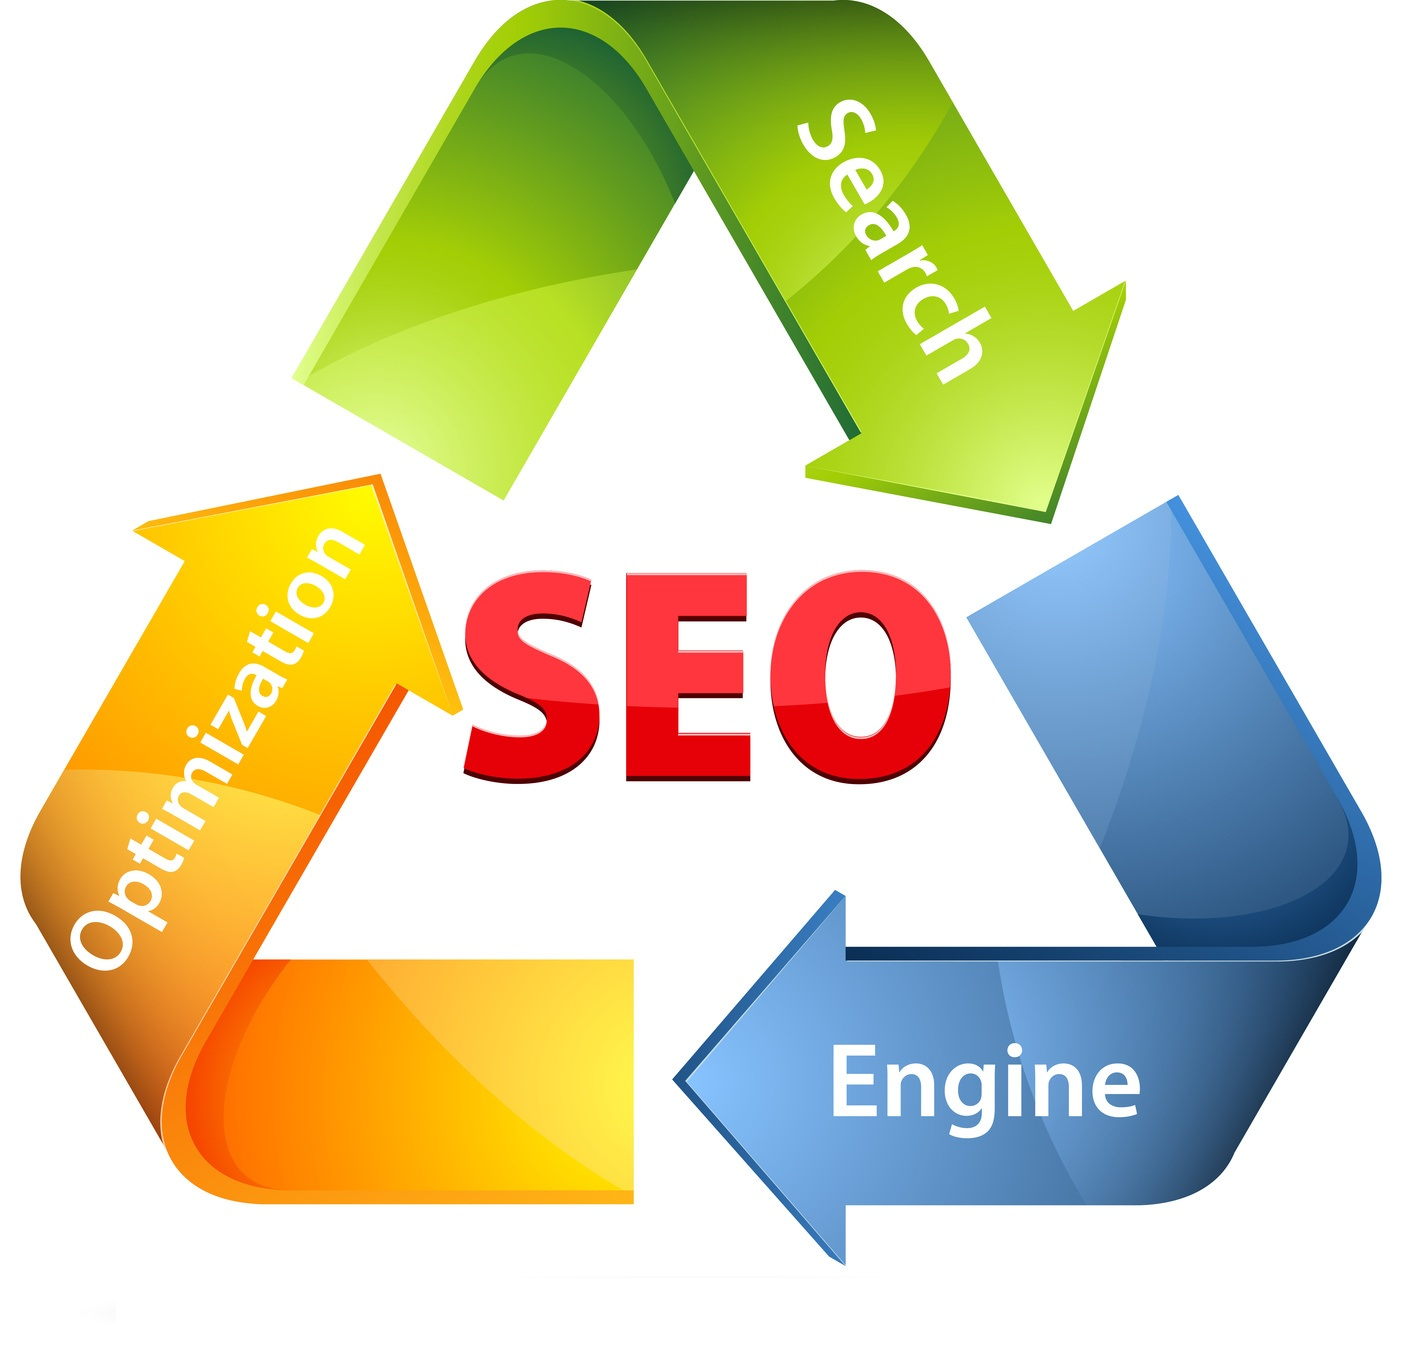 Search Engine Optimization, SEO Services in Northborough, Shrewsbury, Westborough